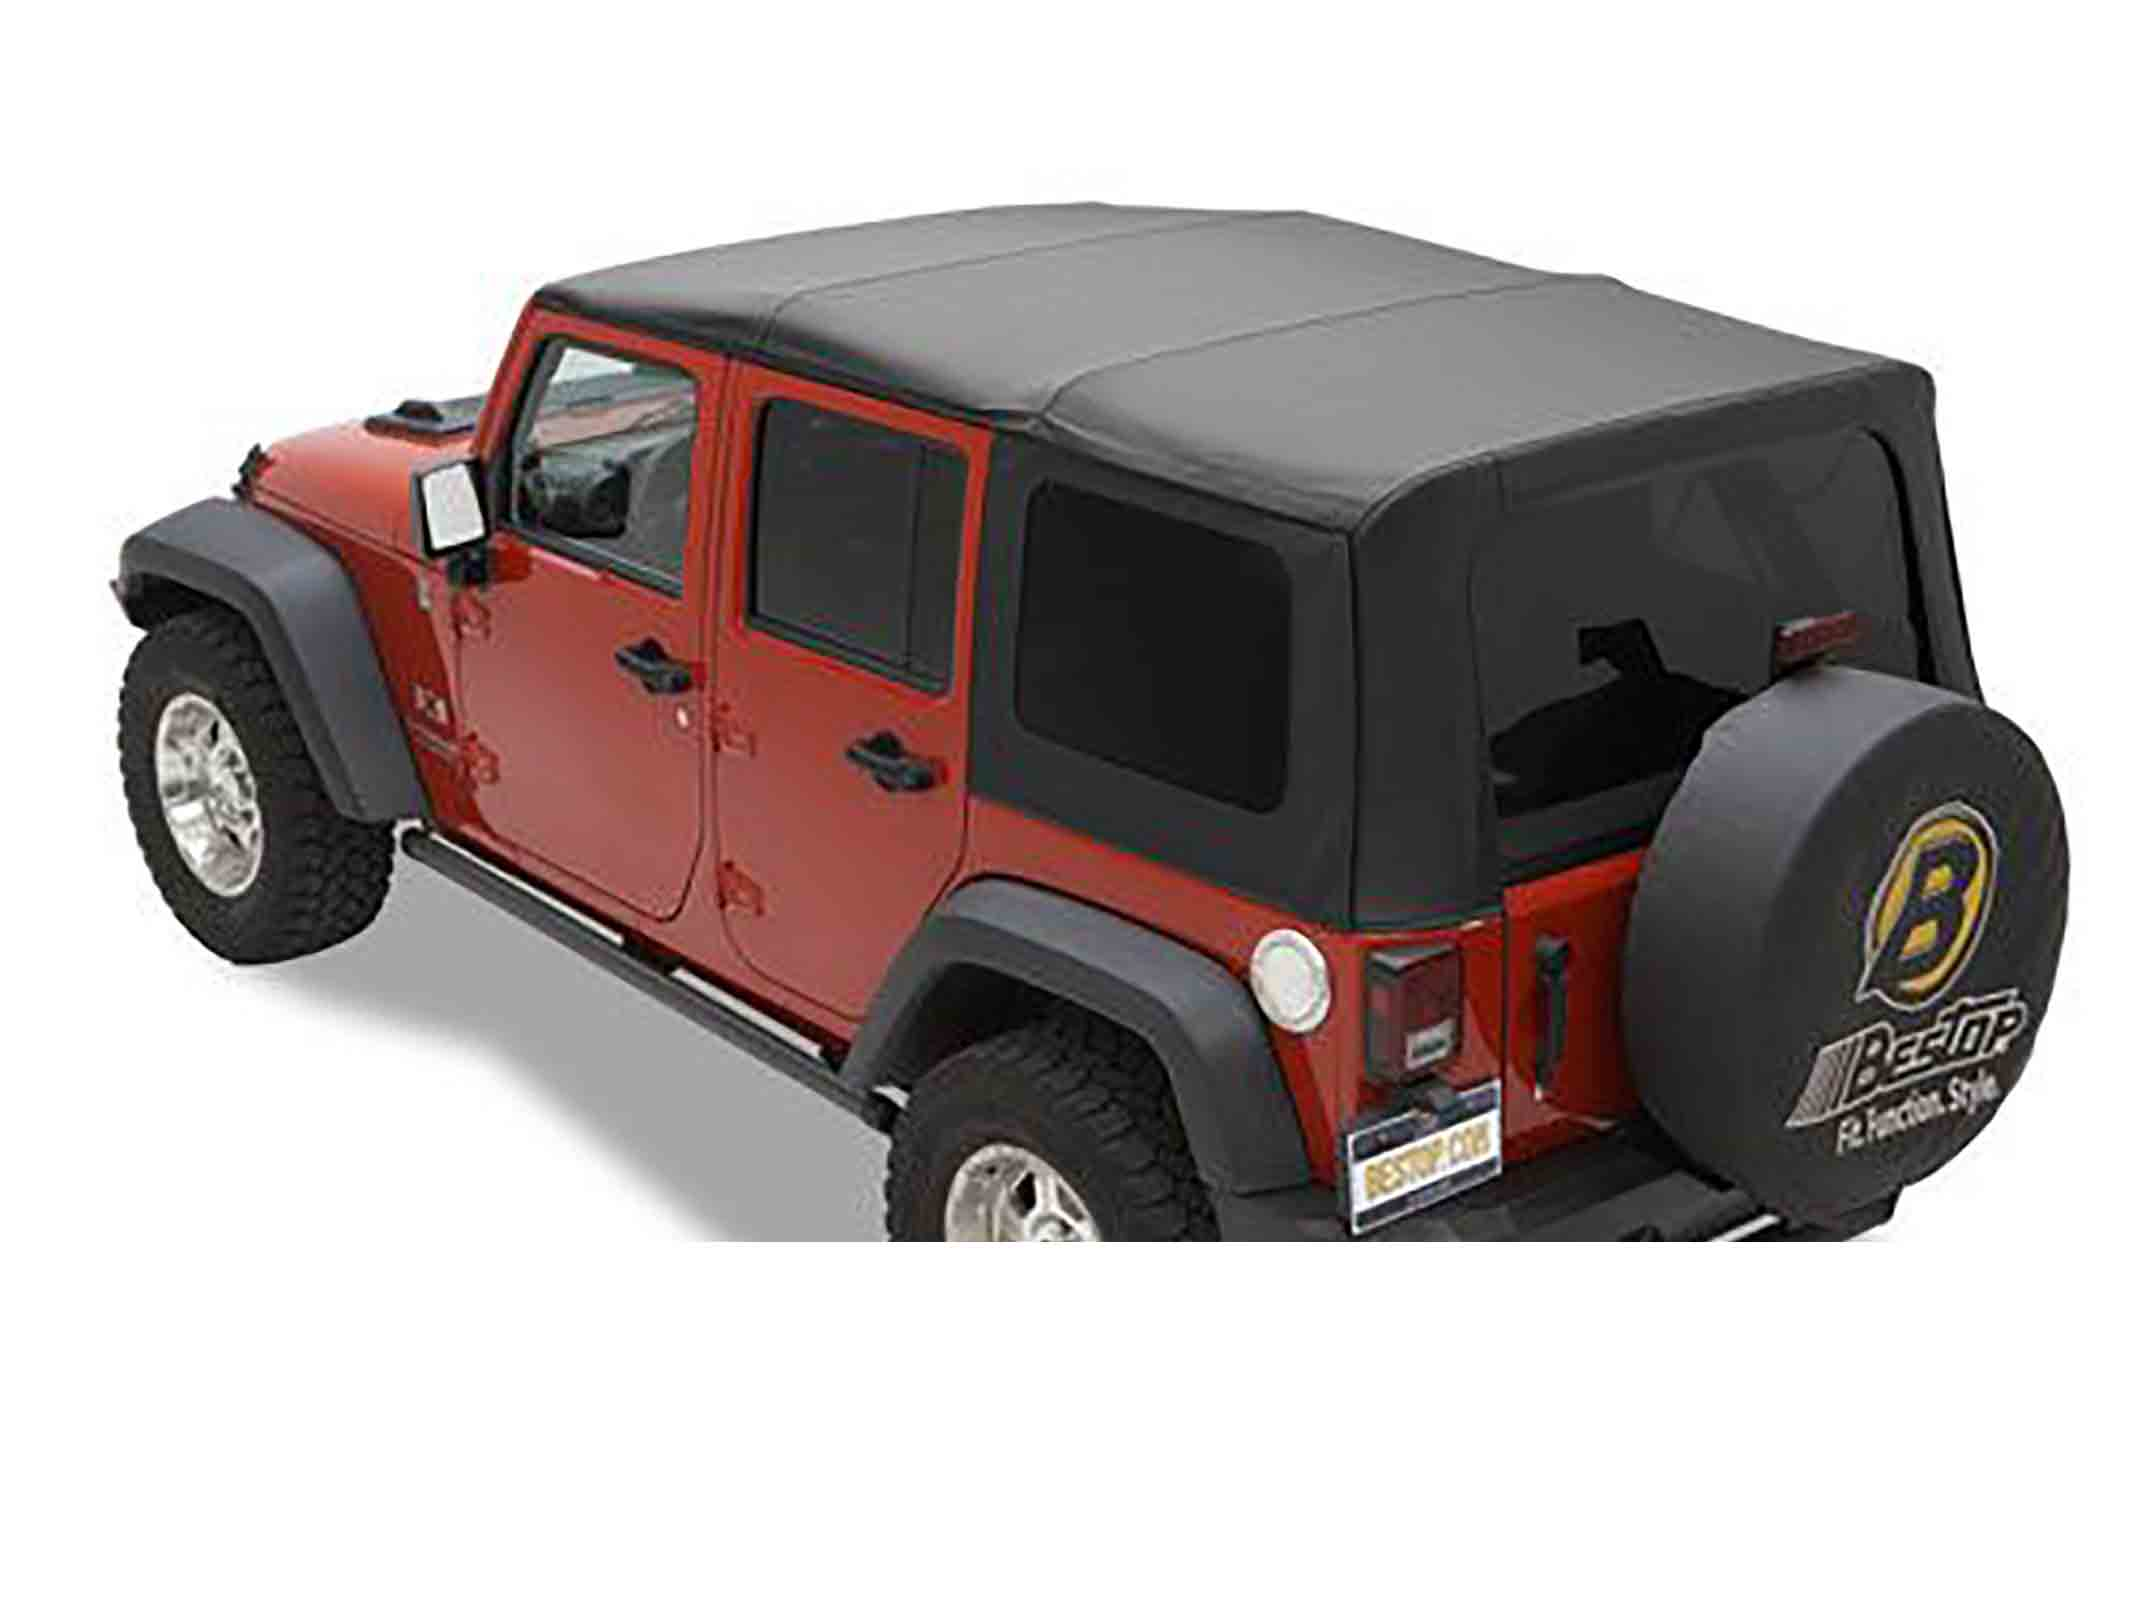 Softtop soft top capottina ricambio wrangler jk unlimited 10 17 4 porte ricambi jeep